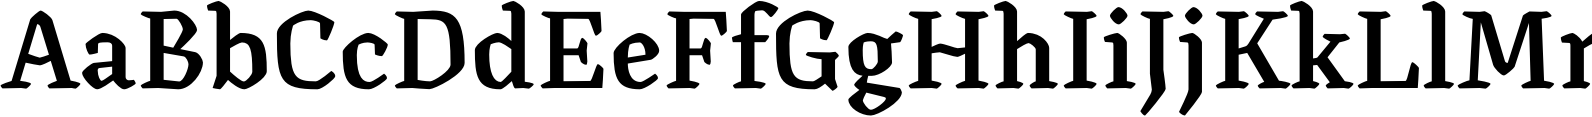 Canilari Std Medium Font